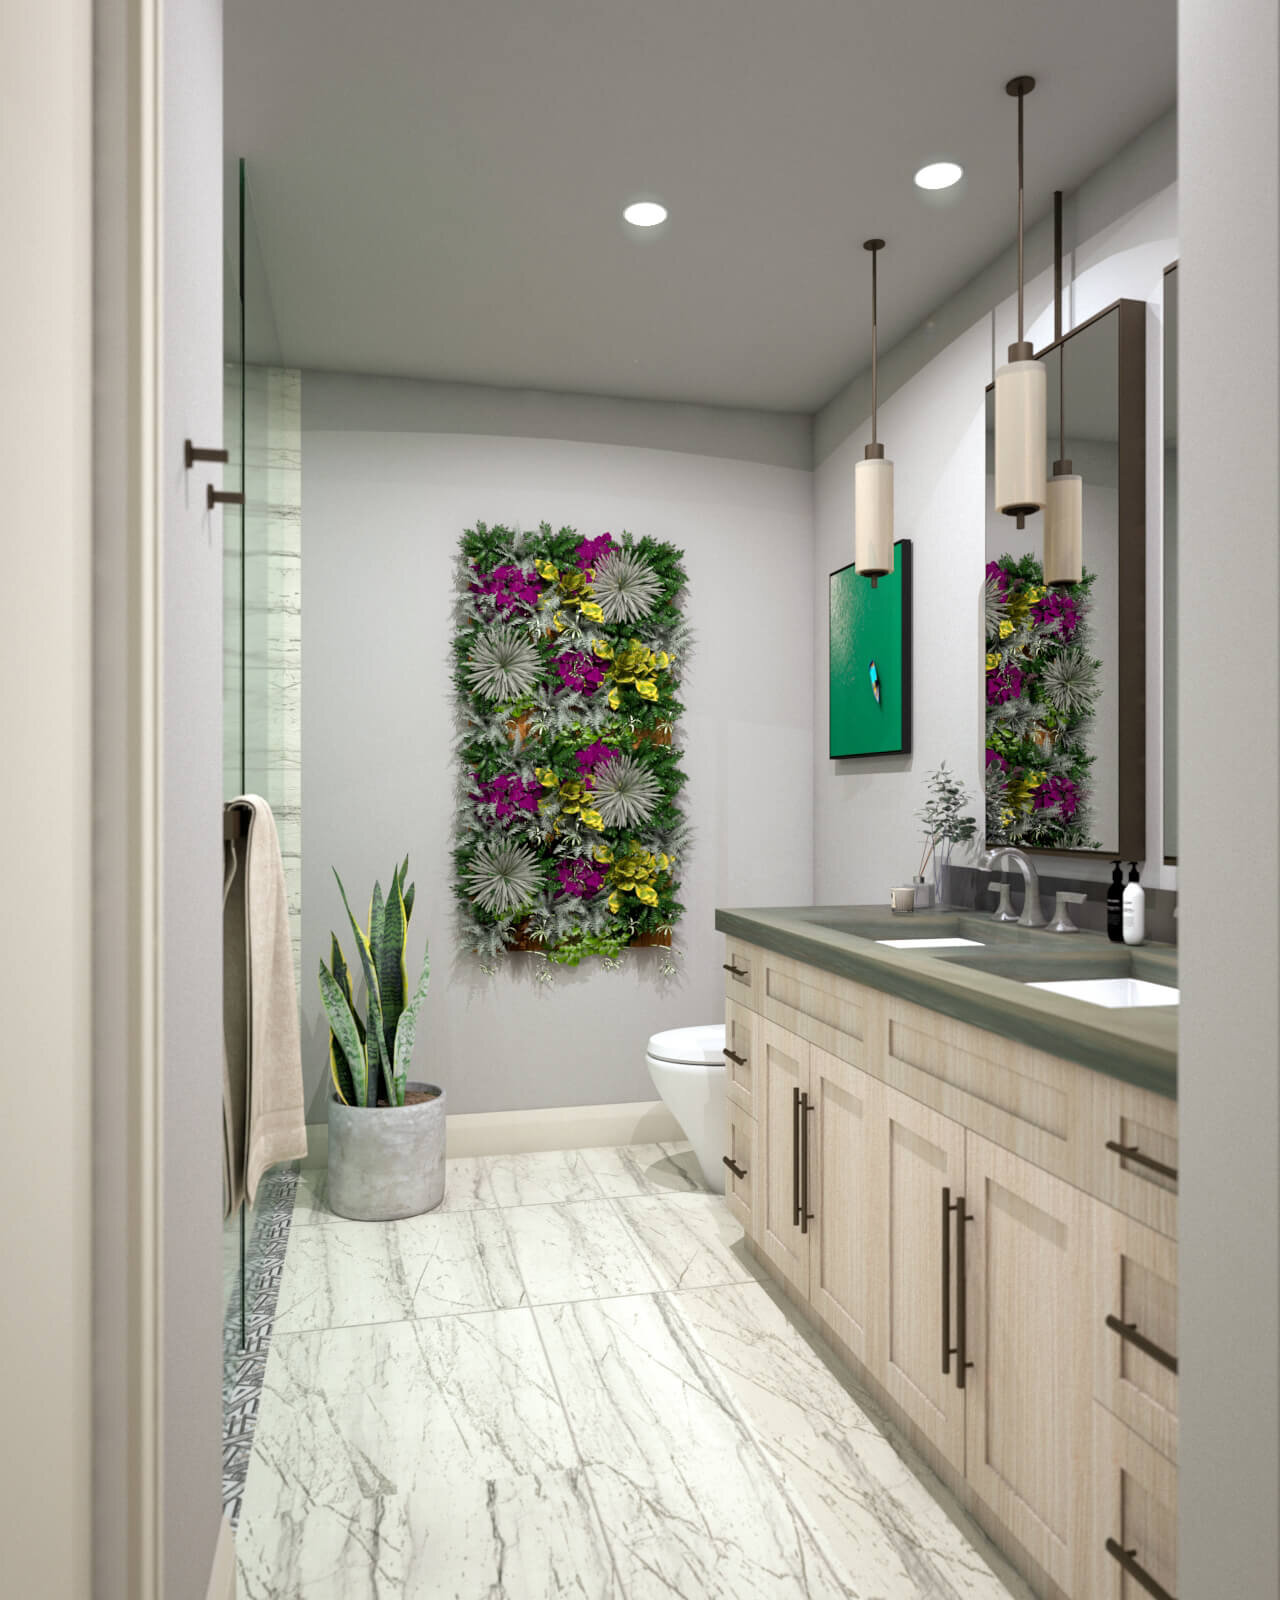 Jeffrey Ramirez Designs - Contemporary Bathroom Design1.jpg